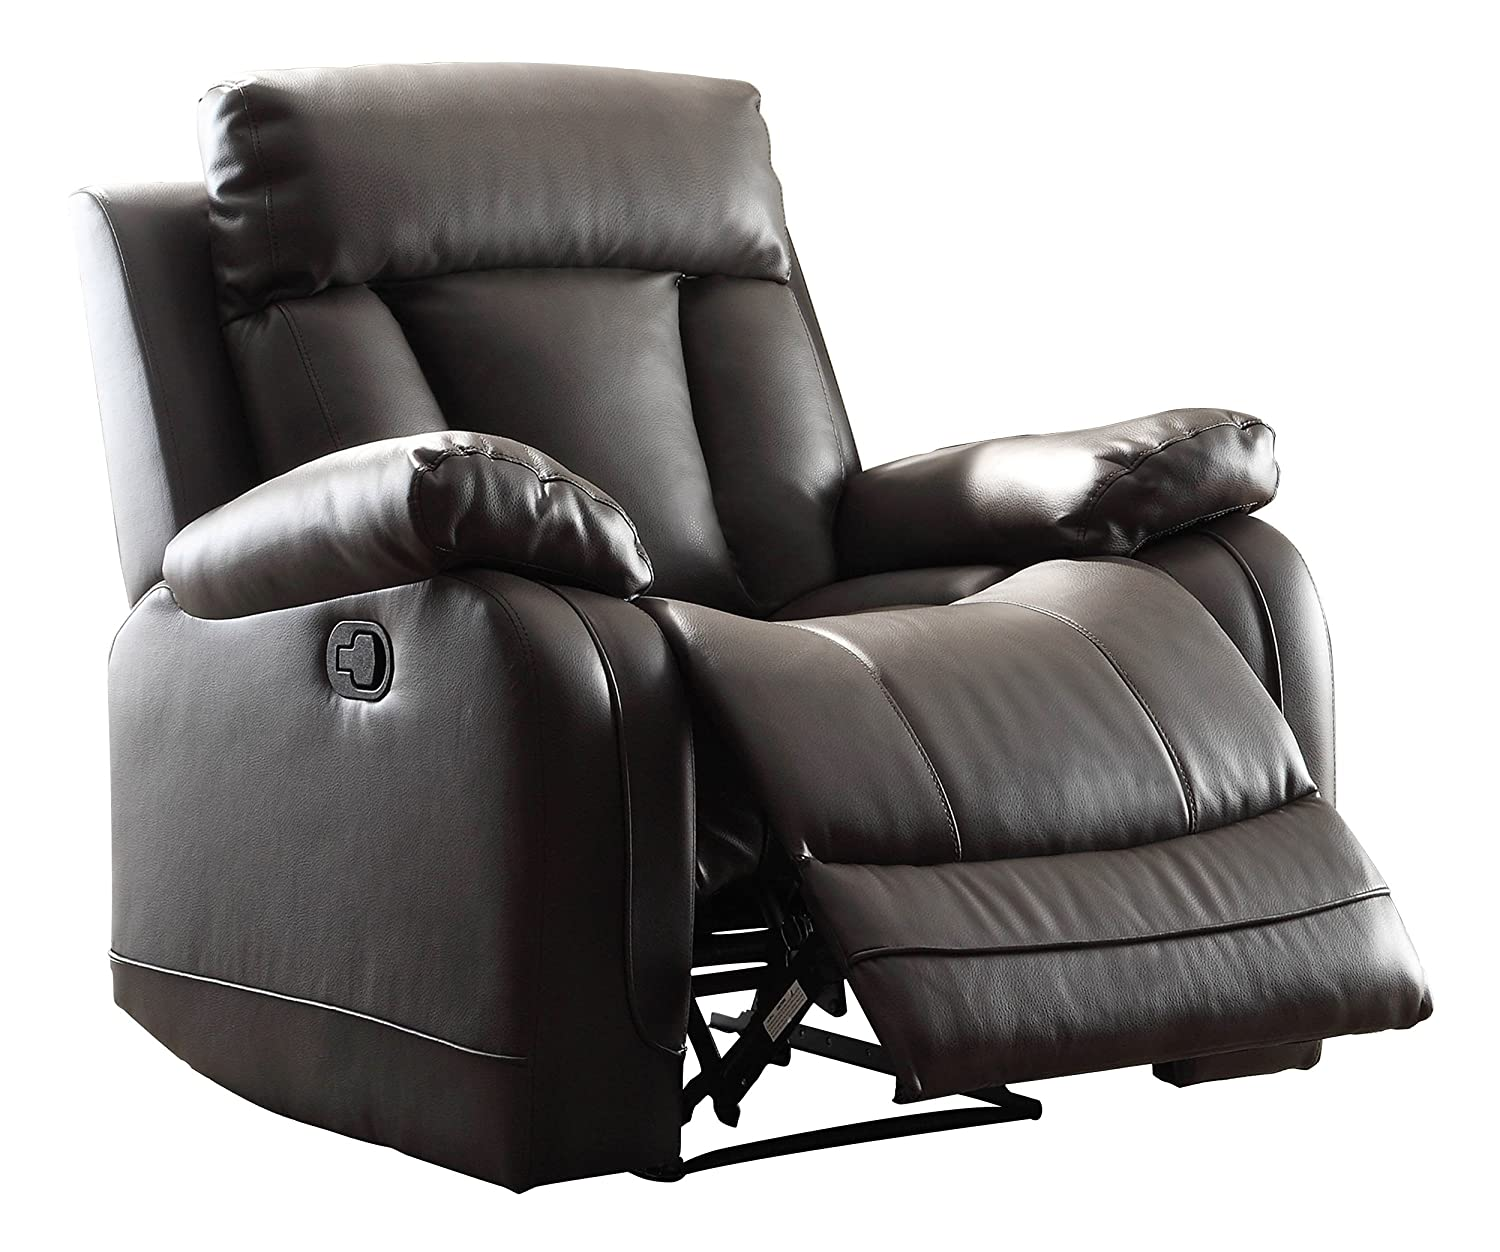 additional chairs chair outdoor with office recliner reclining for admirable online